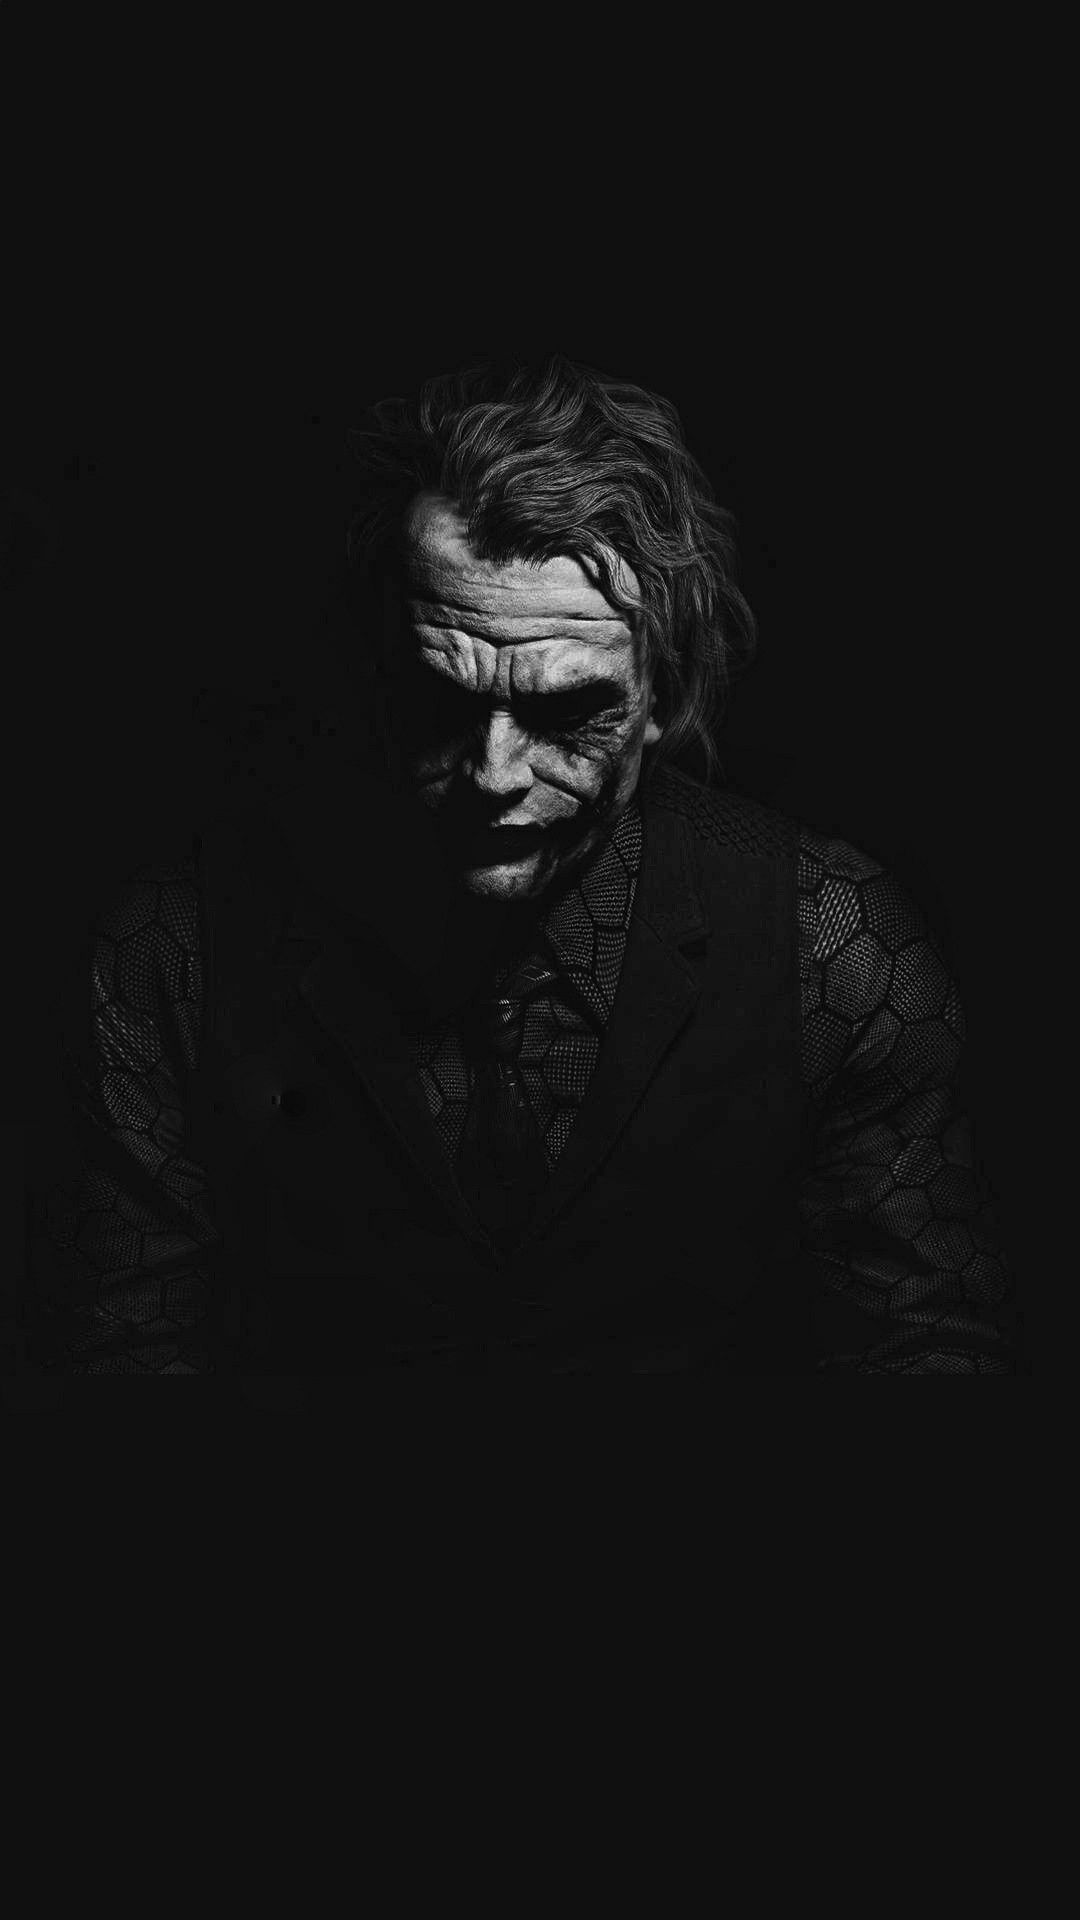 Dark wallpaper | Actresses | Pinterest | Joker wallpapers, Dark wallpaper and Joker art